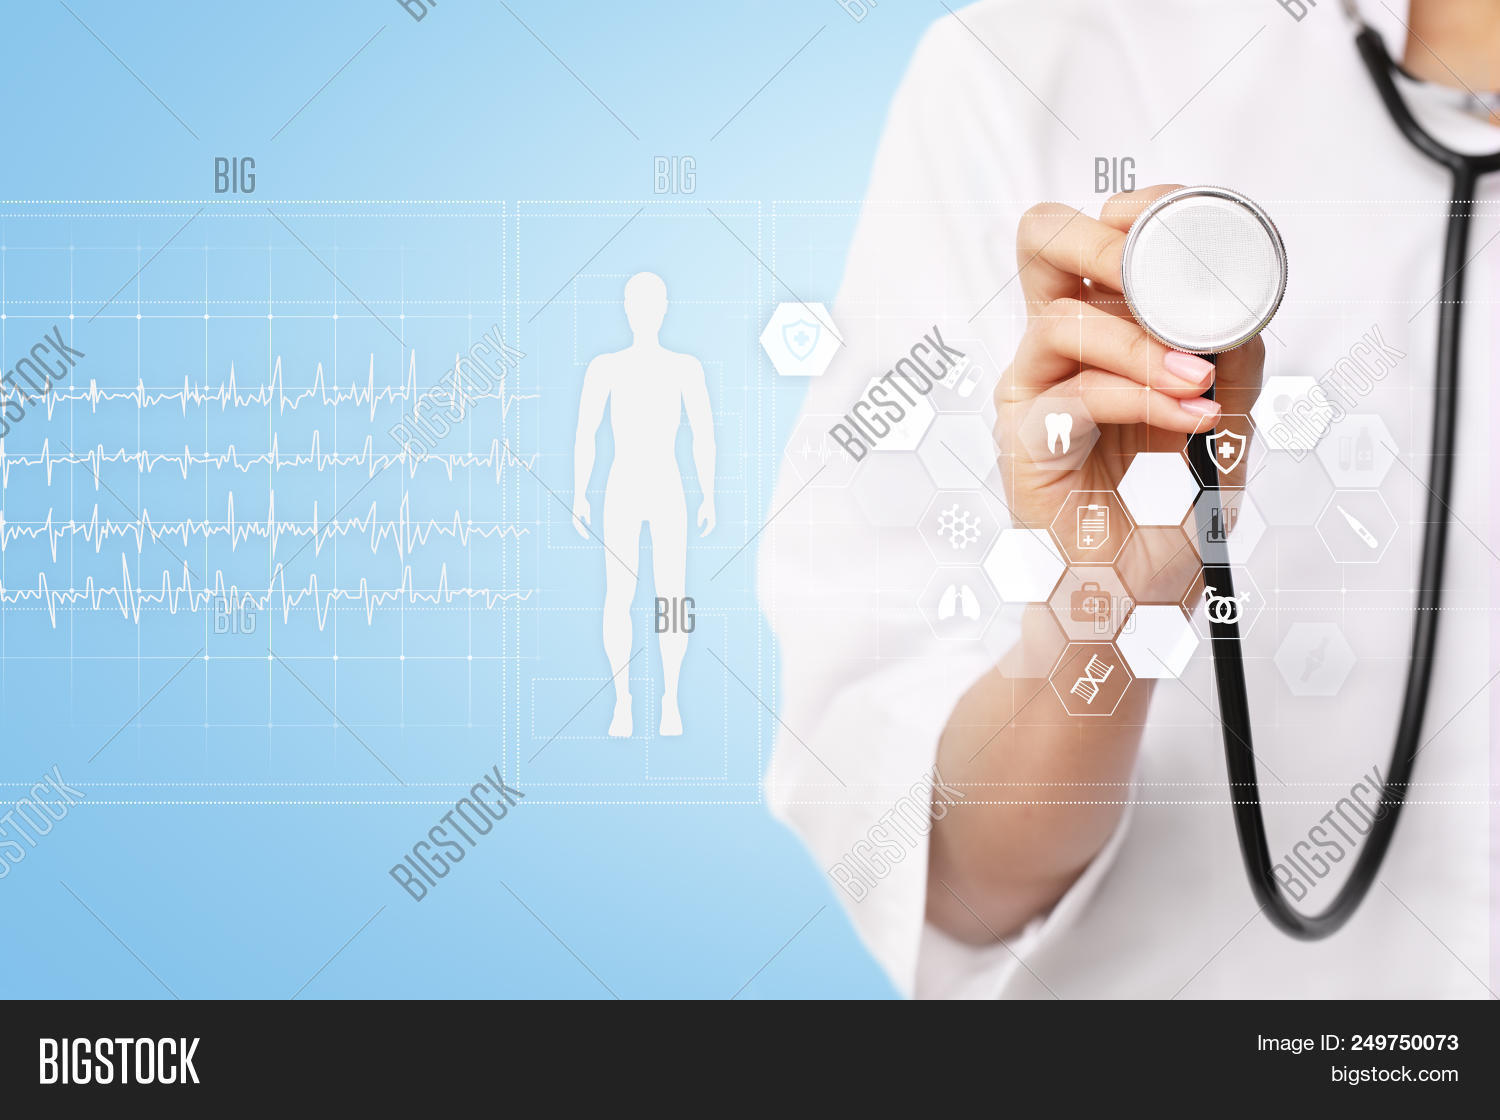 hight resolution of doctor using modern computer with medical record diagram on virtual screen concept health monitorin